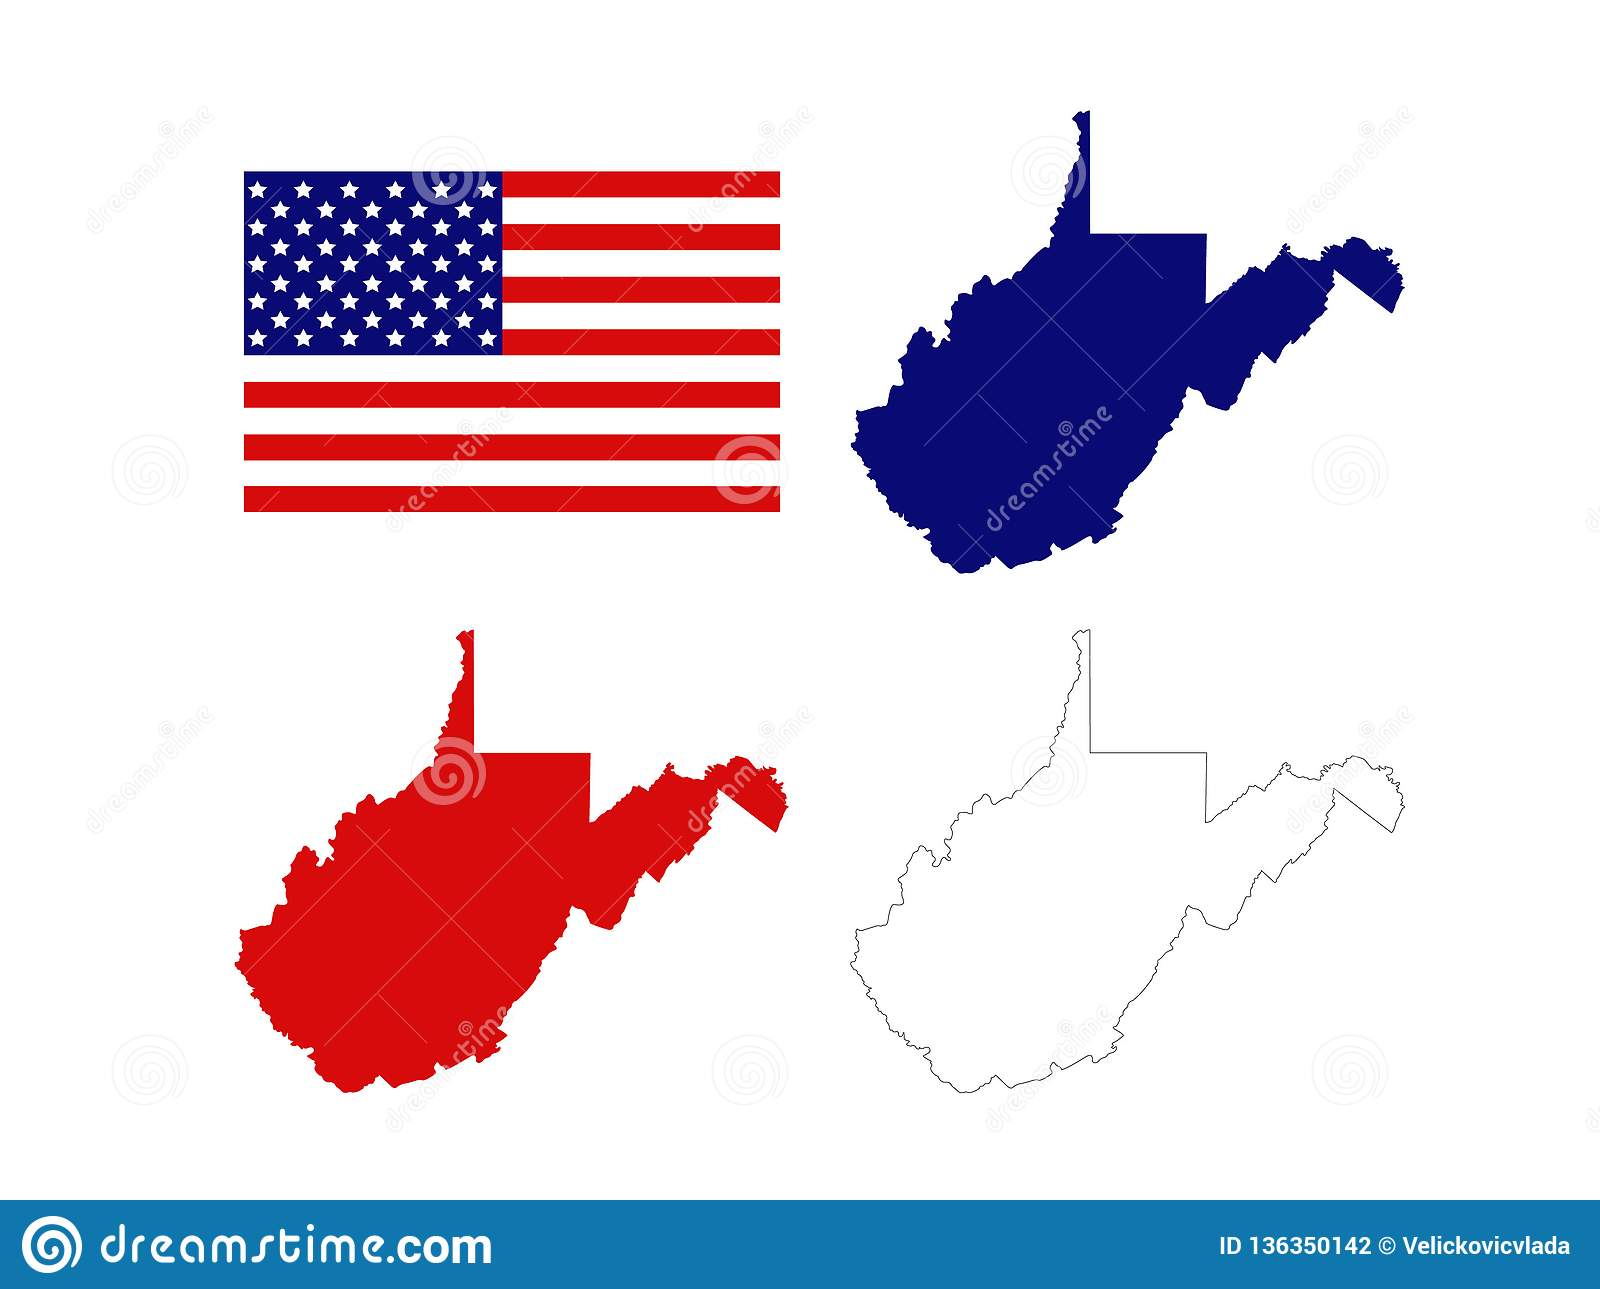 West Virginia Maps With USA Flag - State In The Appalachian Region ...